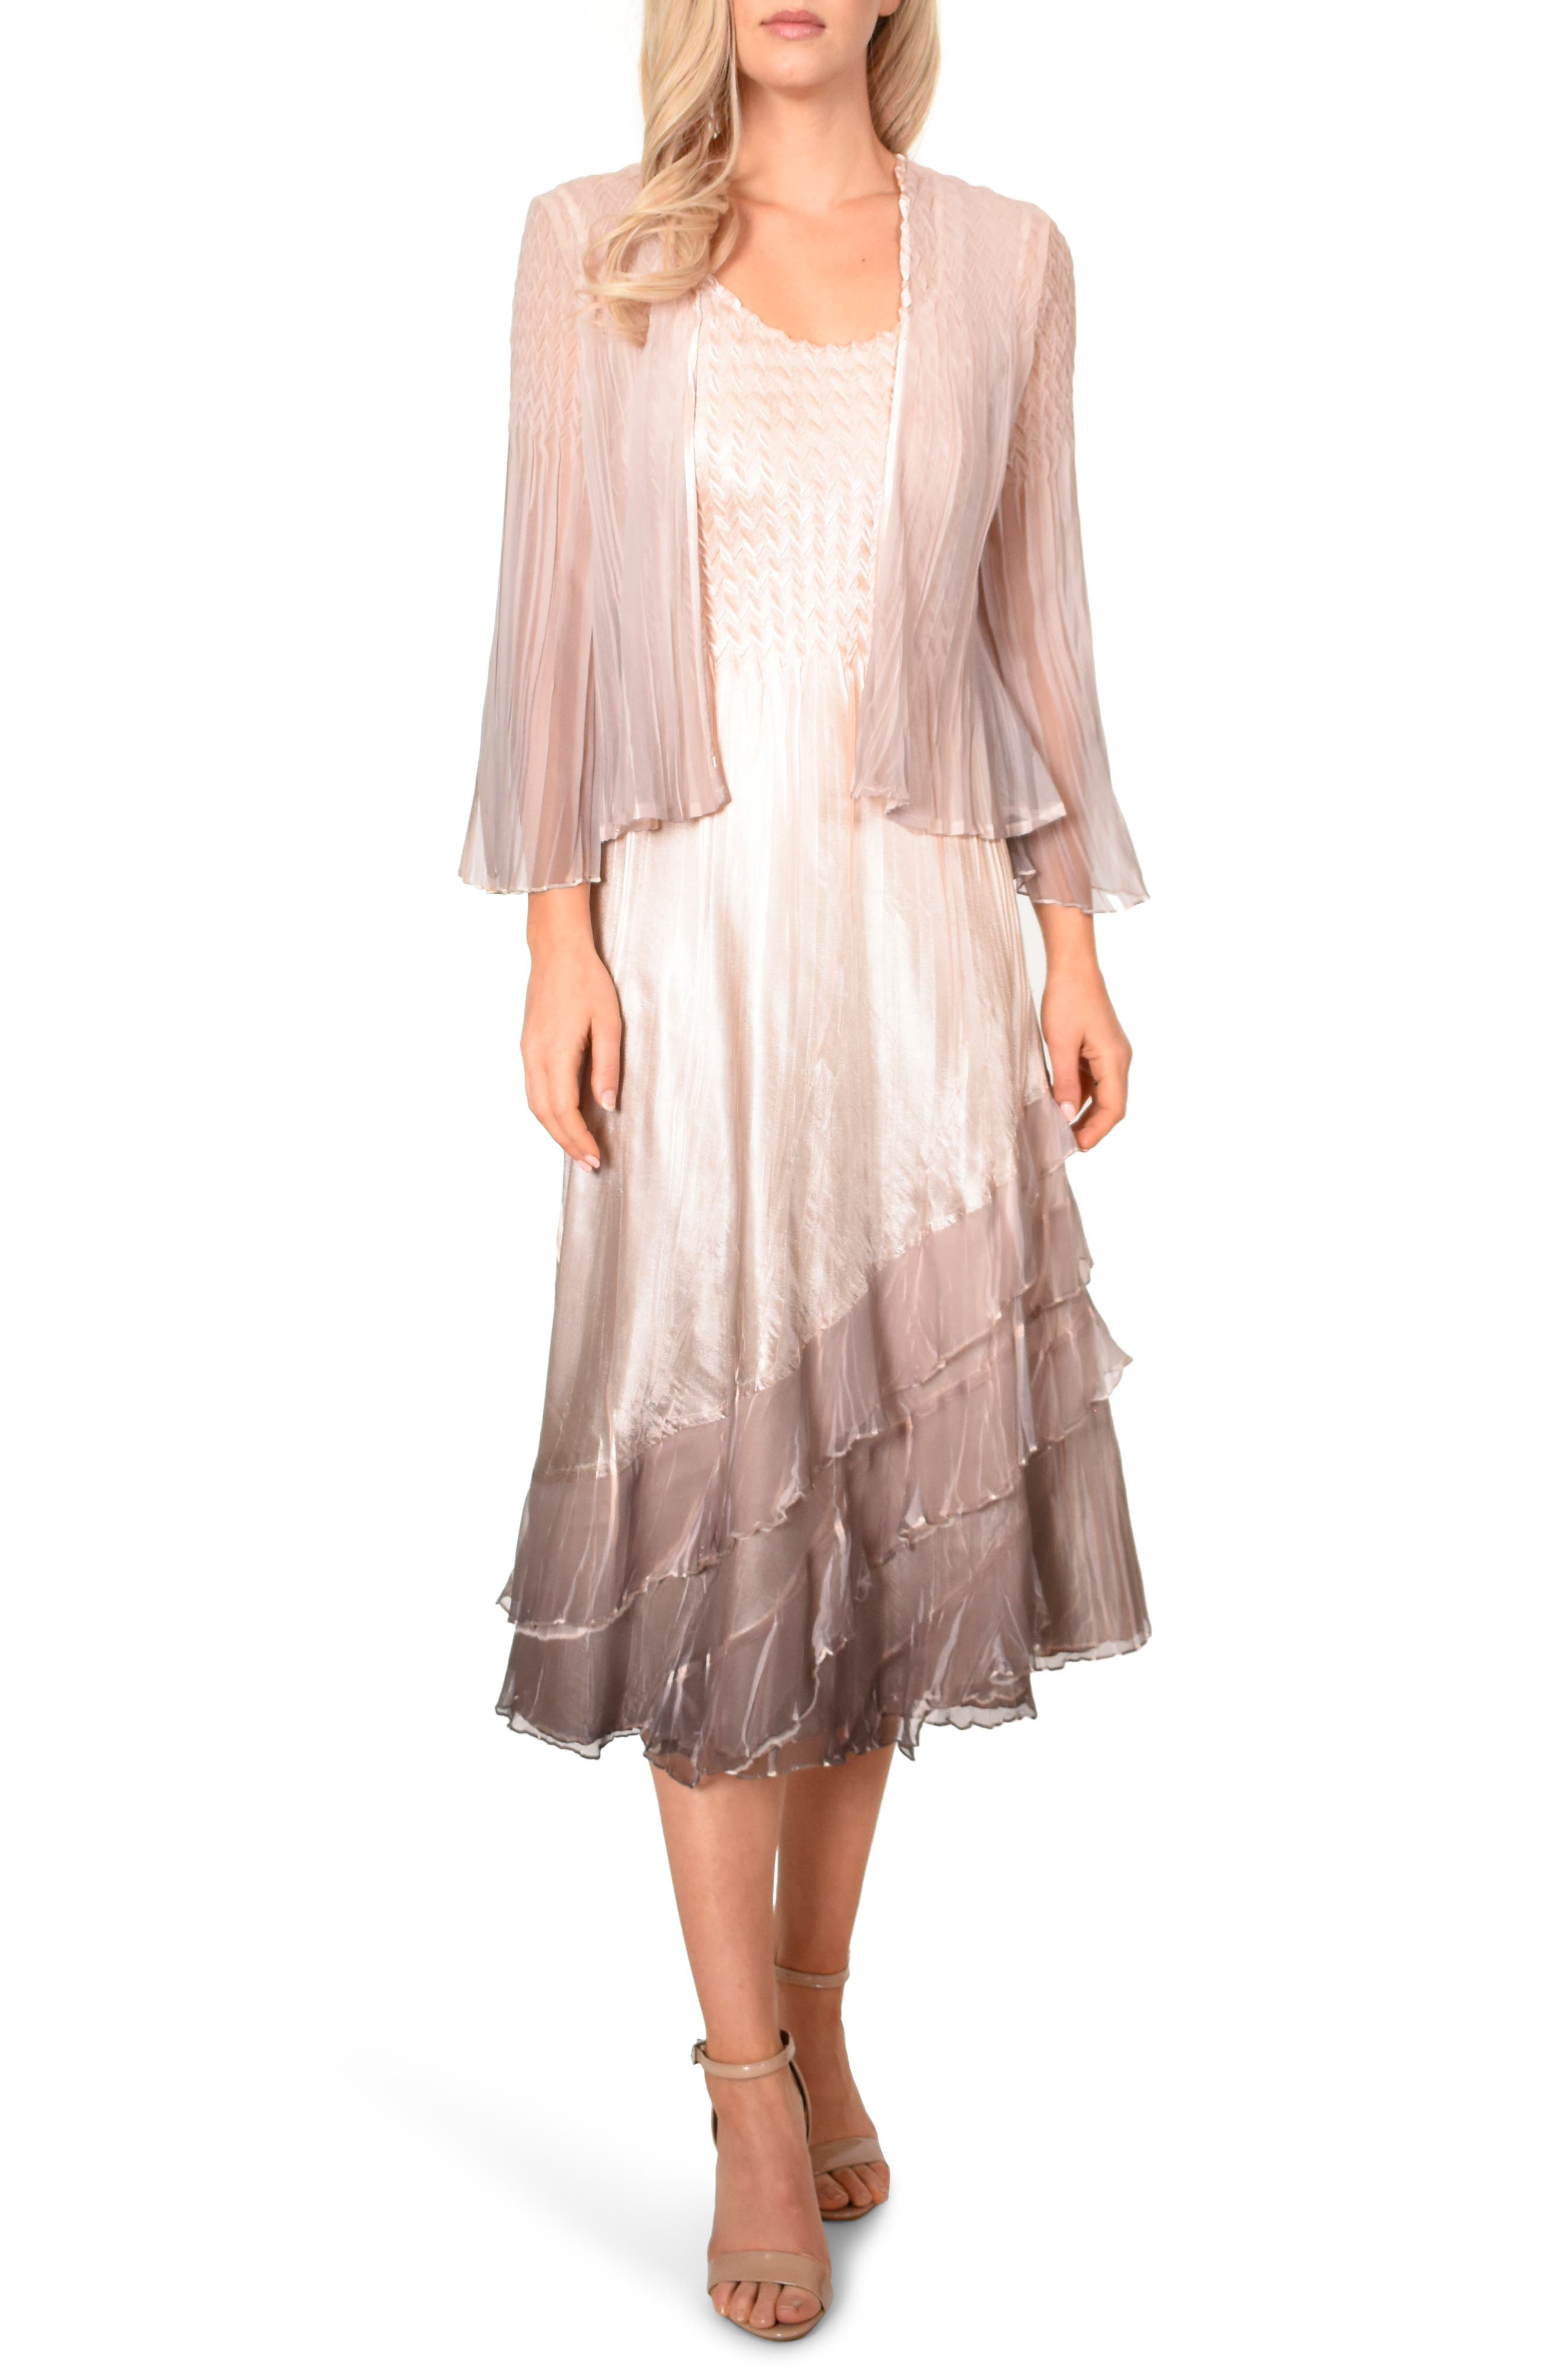 KOMAROV, Charmeuse & Chiffon Cocktail Dress with Jacket, Main thumbnail 1, color, VINTAGE ROSE CAFE OMBRE